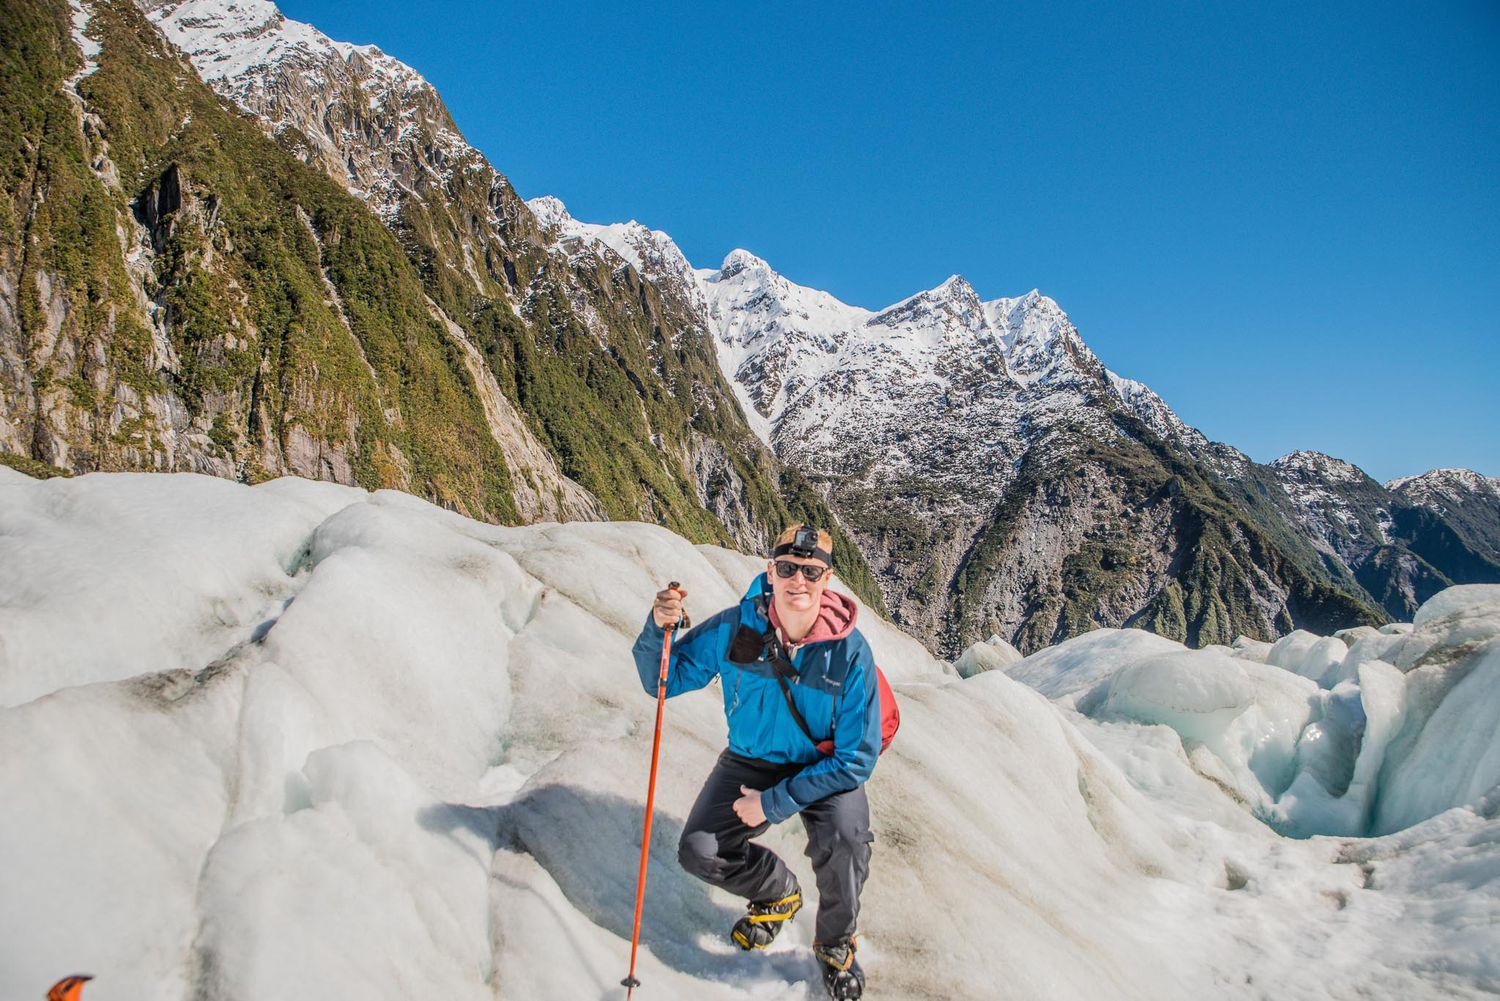 Franz Josef - Things to do on South Island of New Zealand